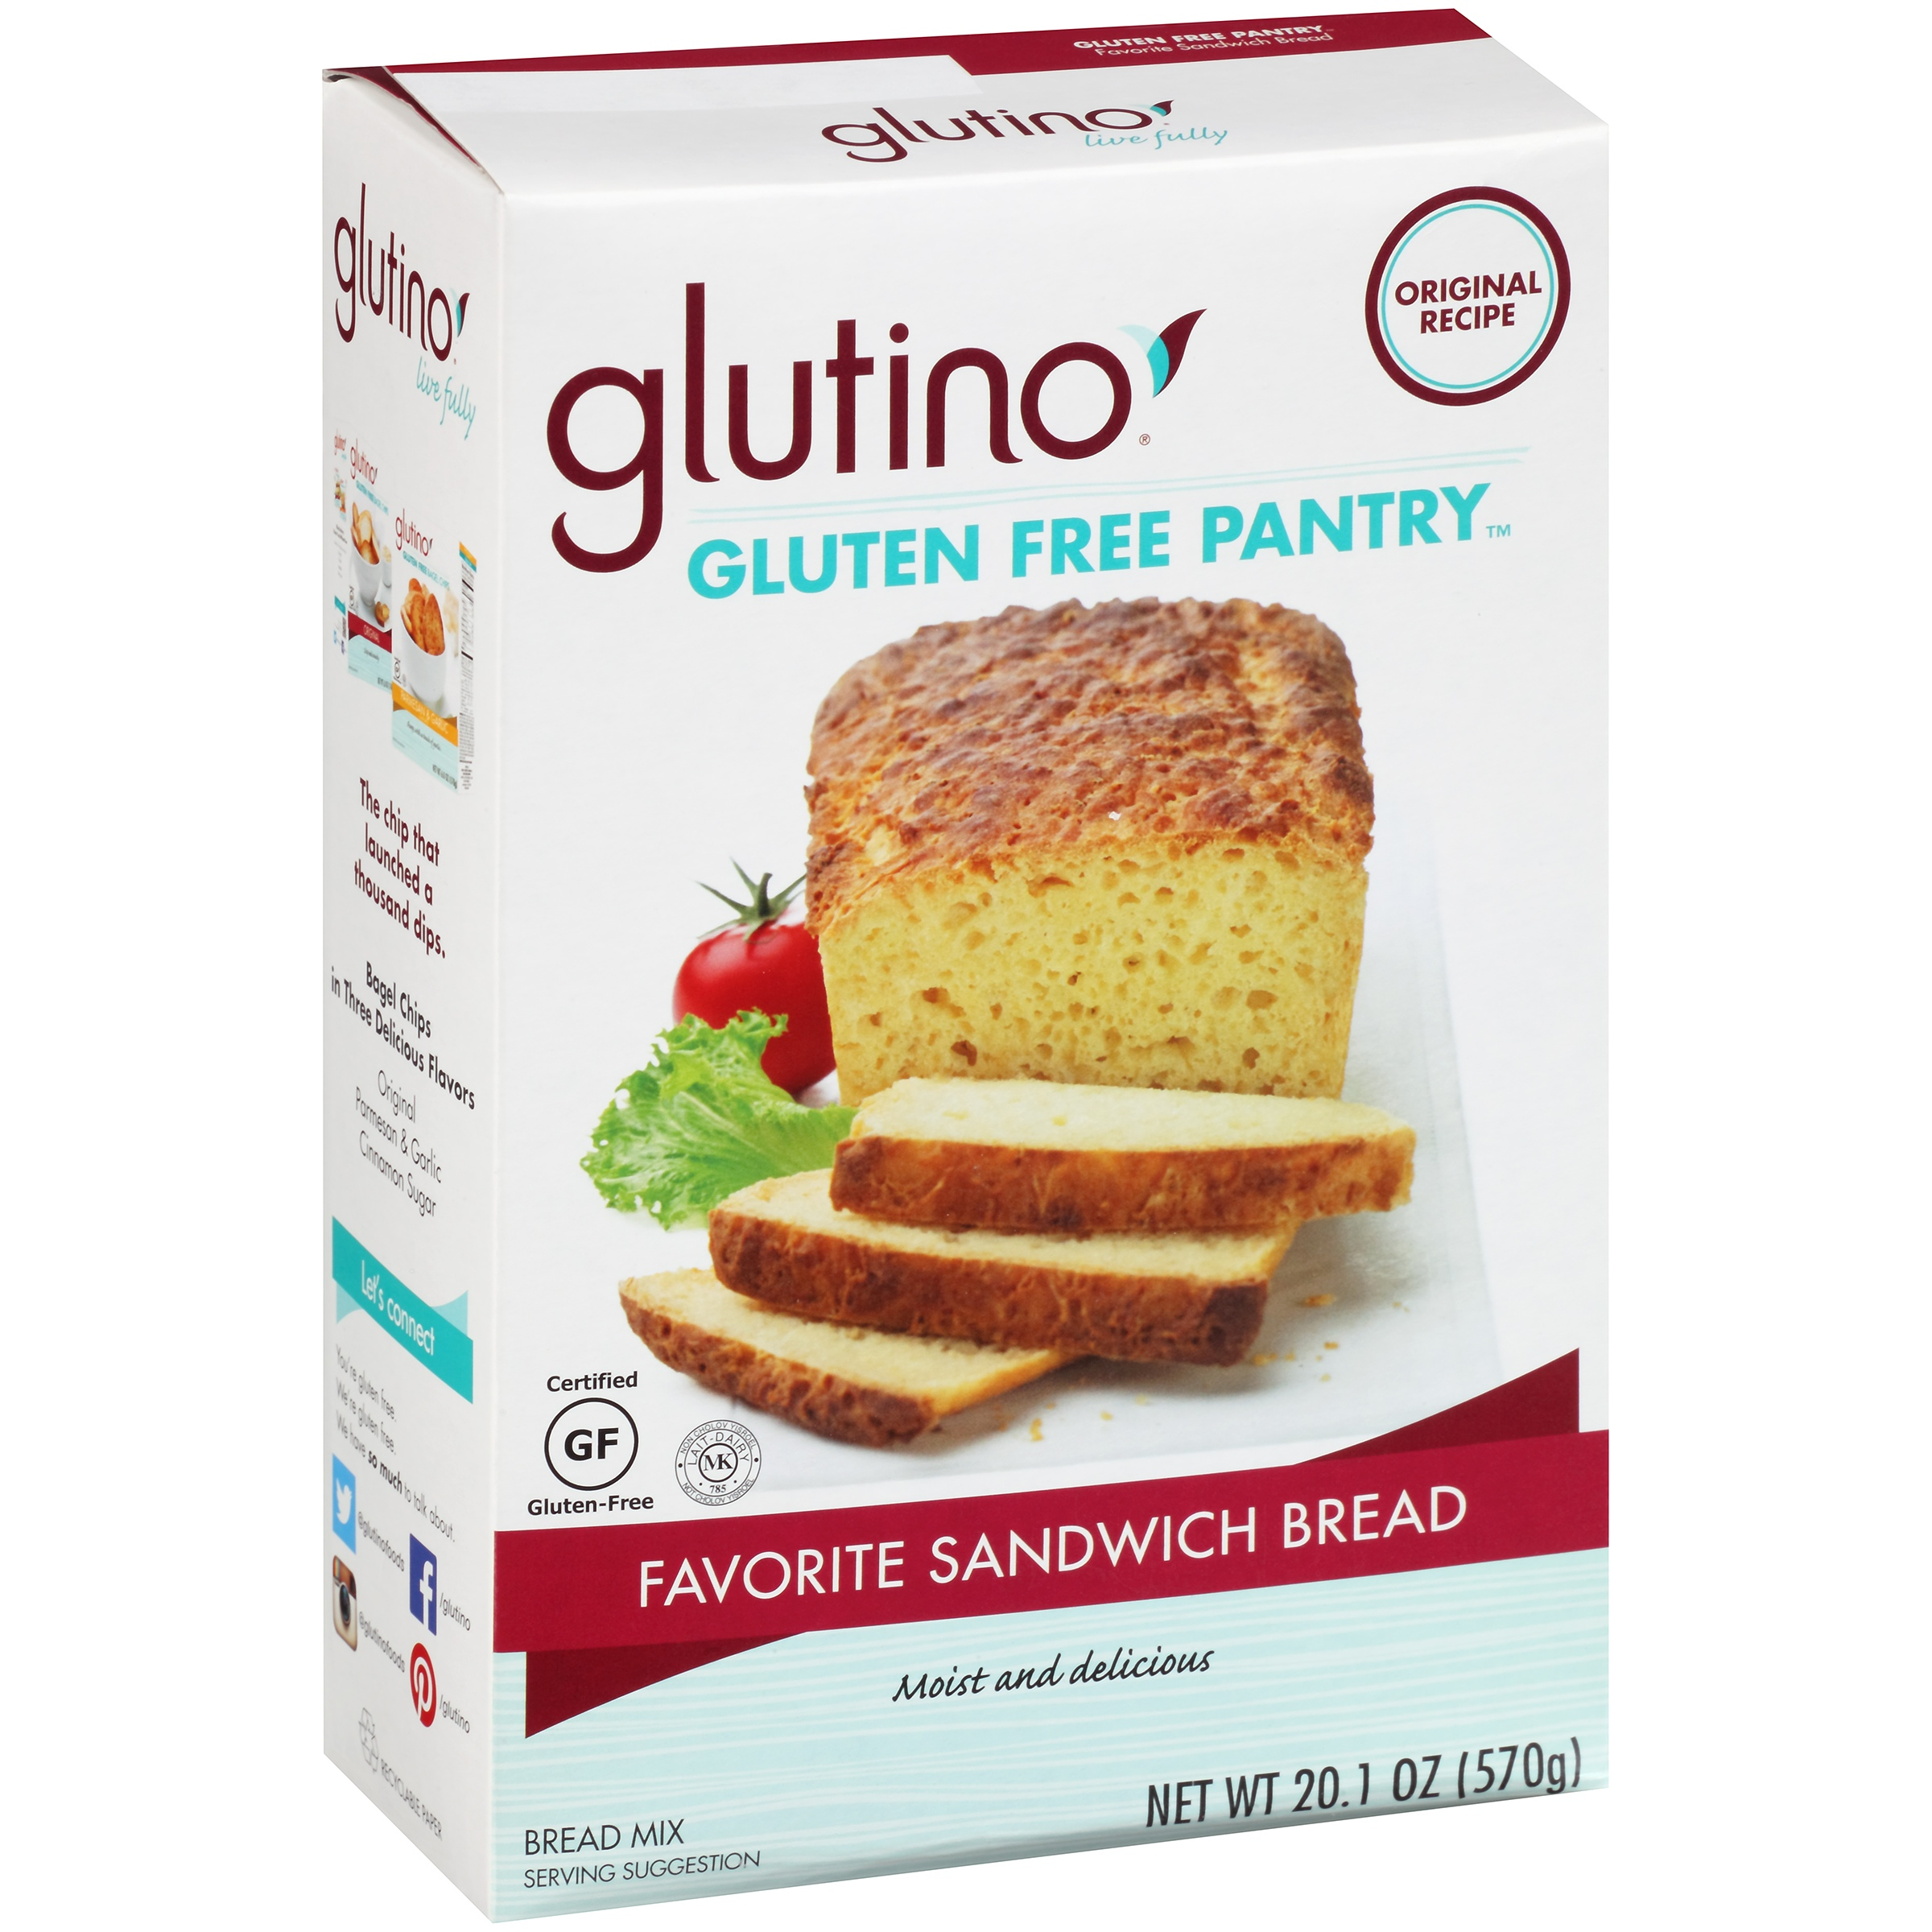 Glutino Gluten Free Pantry Favorite Sandwich Bread Mix 20.1 oz. Box by Glutino, a Division of Boulder Brands USA, Inc.